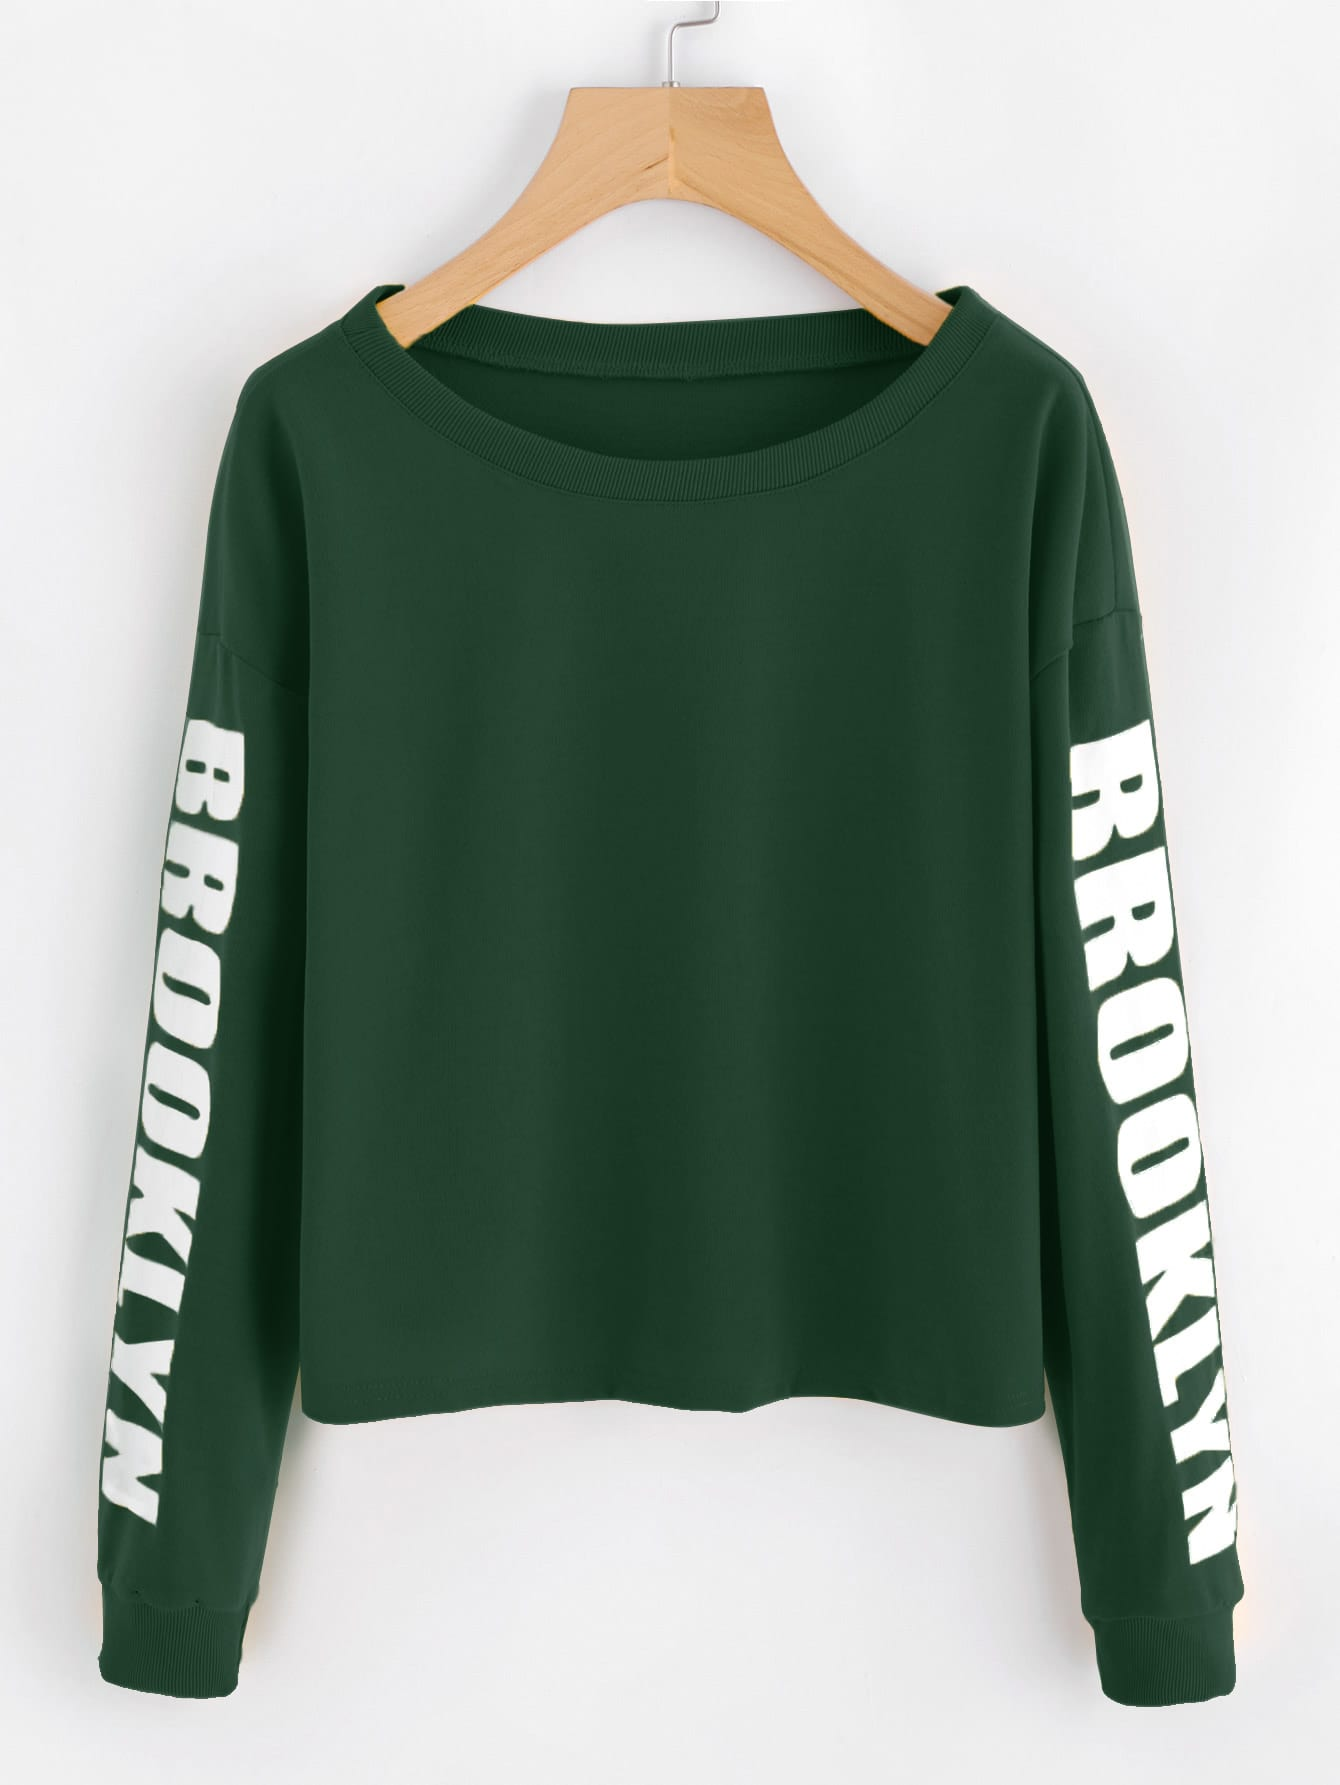 Drop Shoulder Letter Print Crop Sweatshirt drop shoulder crop sweatshirt